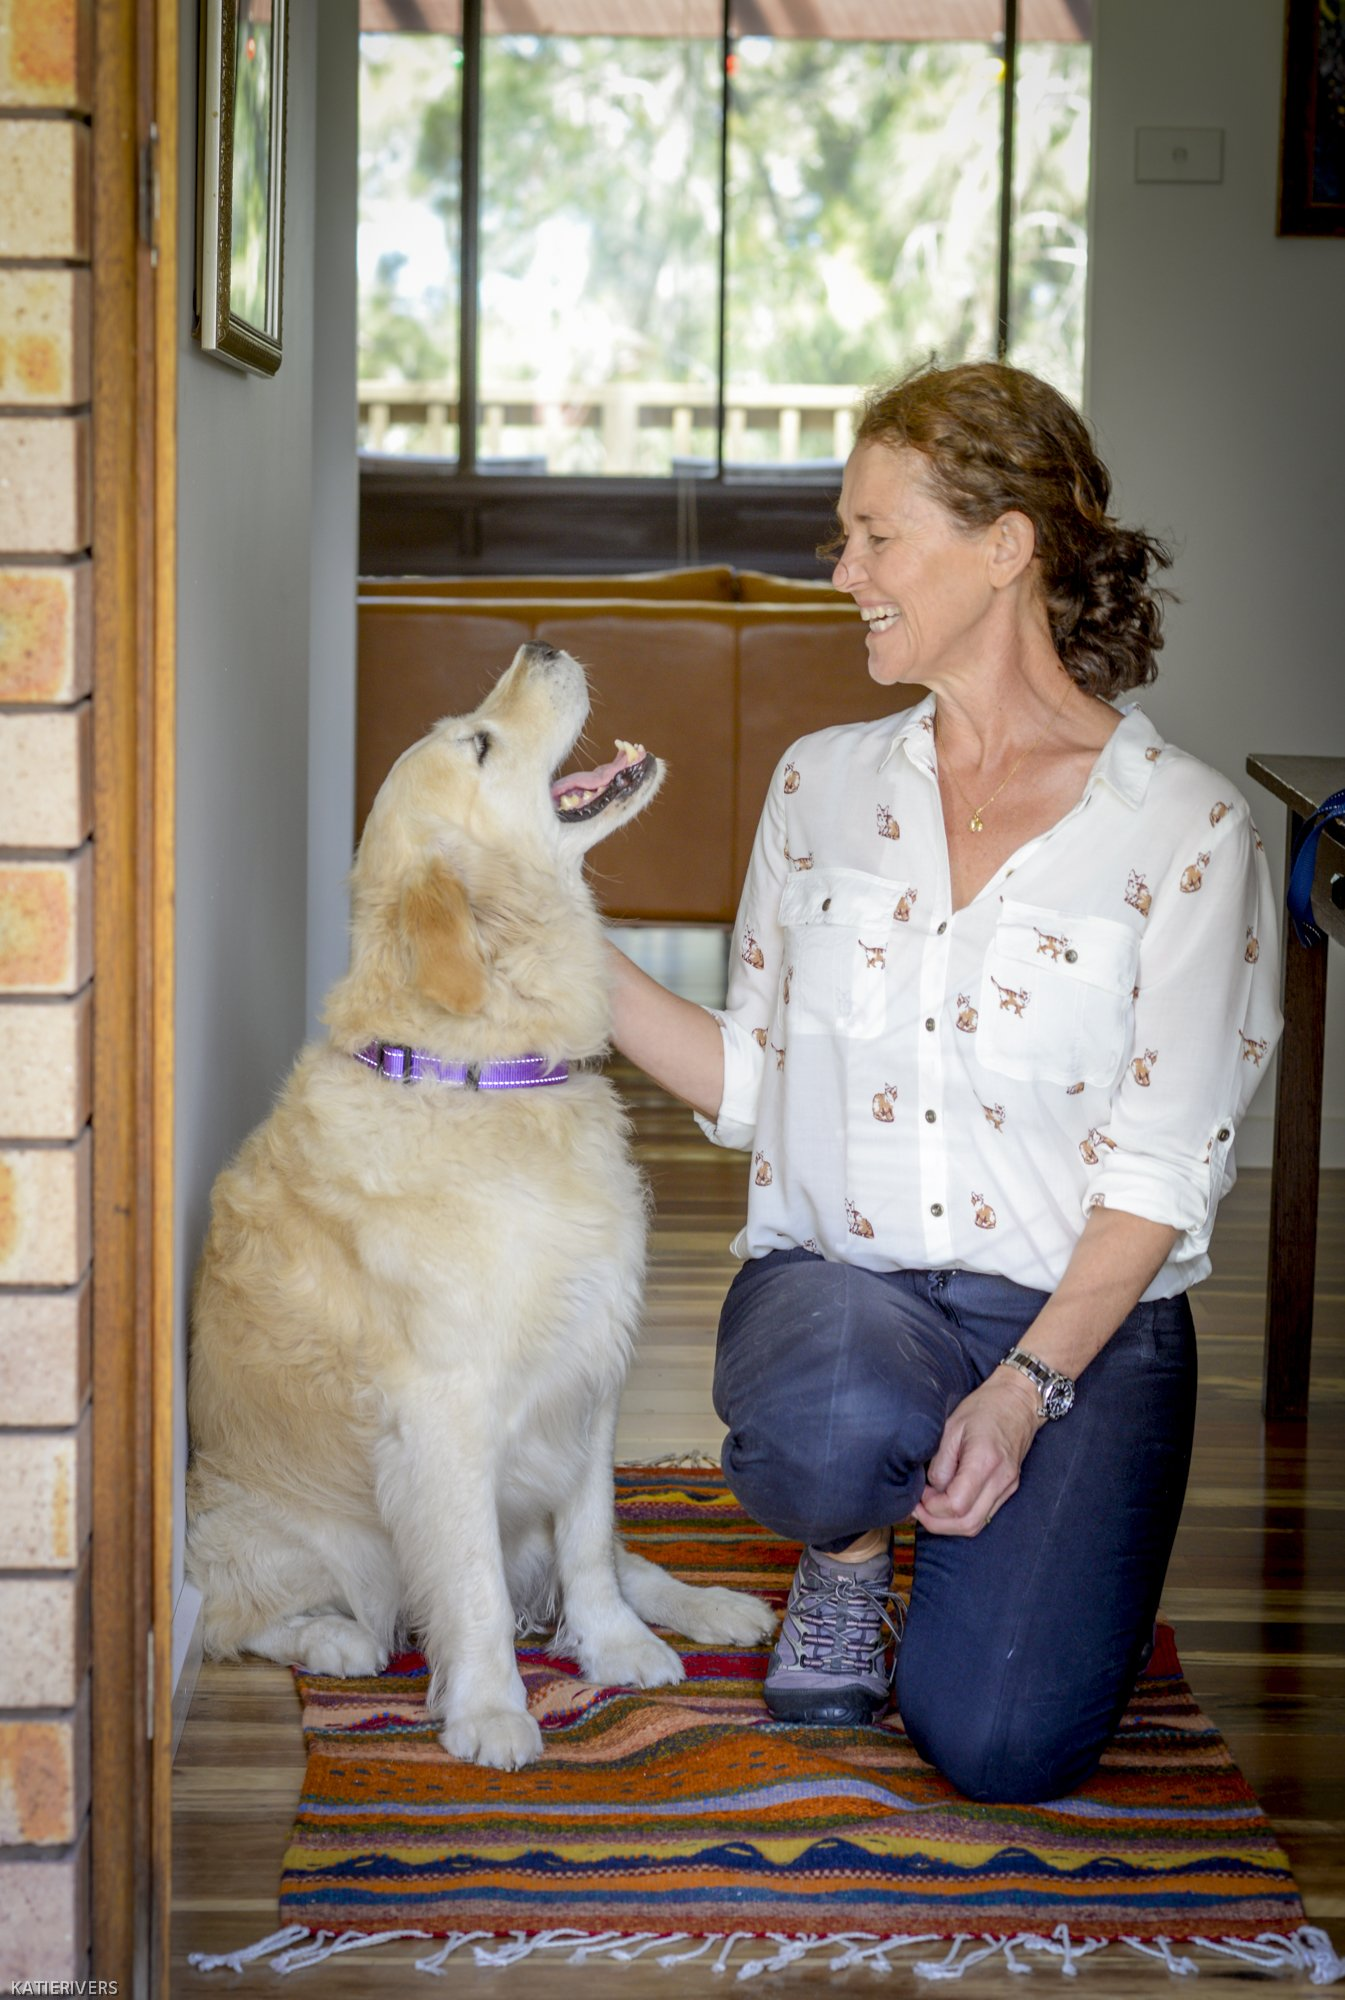 Dr. Glynis Kuipers is an experienced vet and animal carer, living and working on the South Coast of New South Wales.